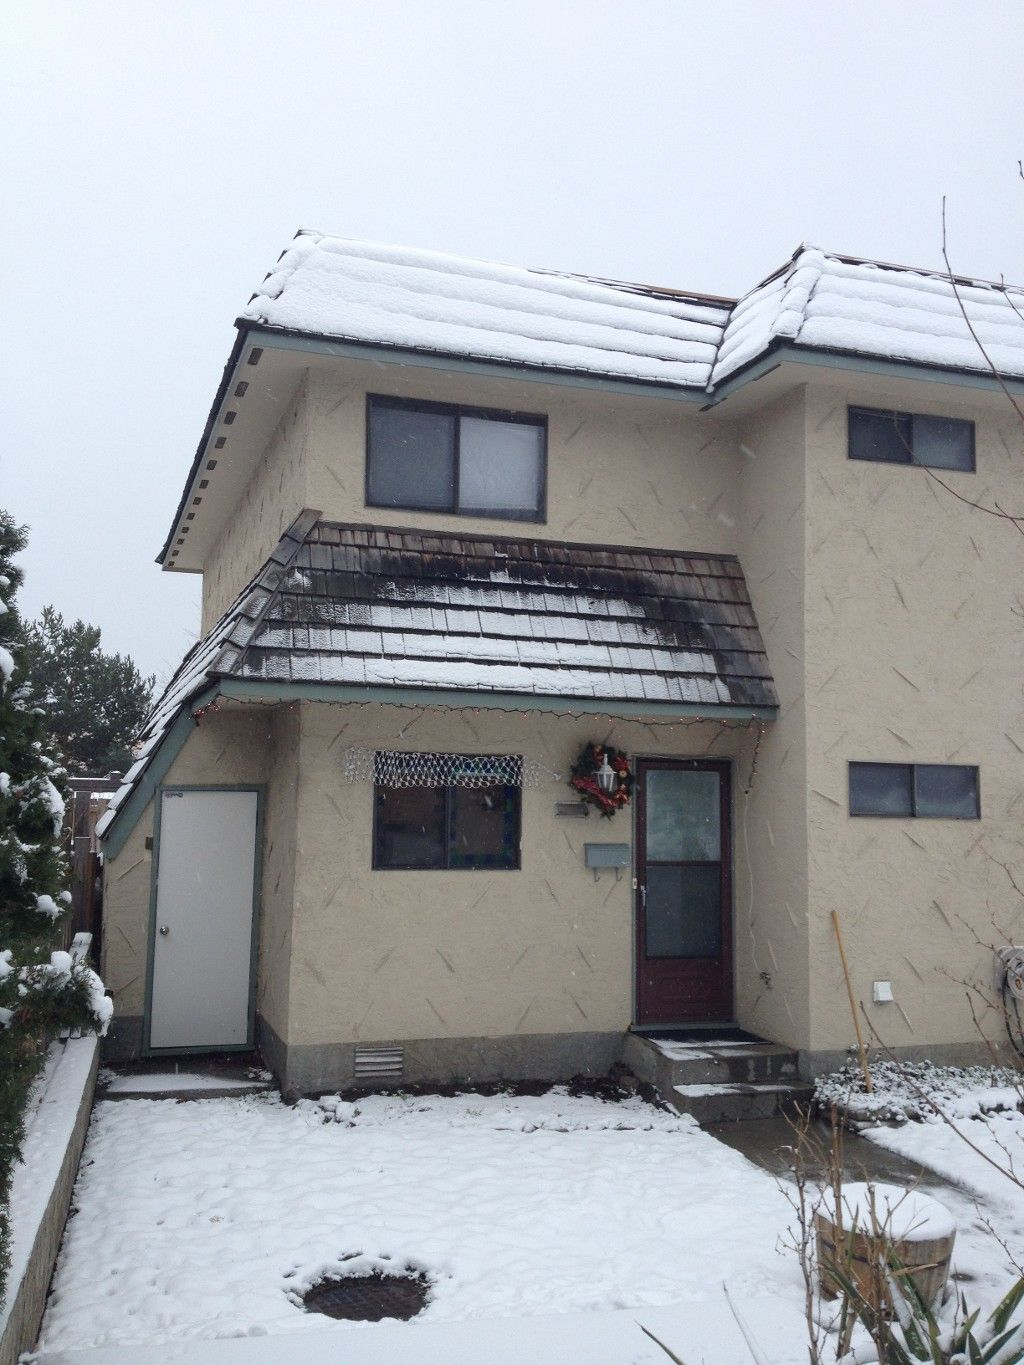 Main Photo: 40 45 W Green Avenue in Penticton: Main South Multifamily for sale : MLS®# 140777